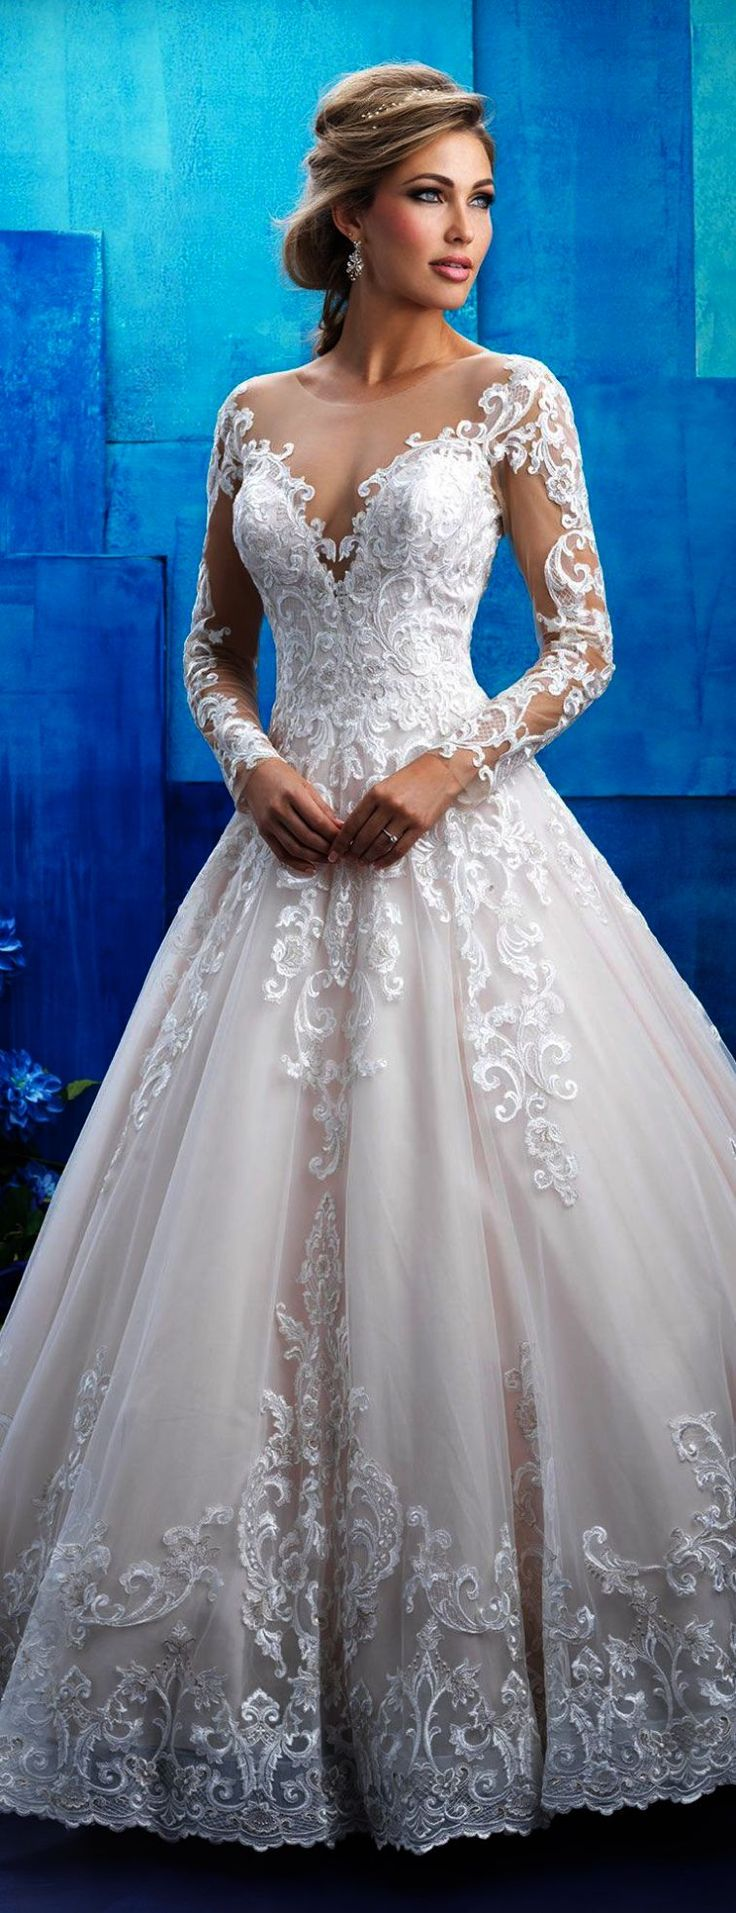 Lace Wedding Dresses Pnina Tornai Lace Wedding Gown Design